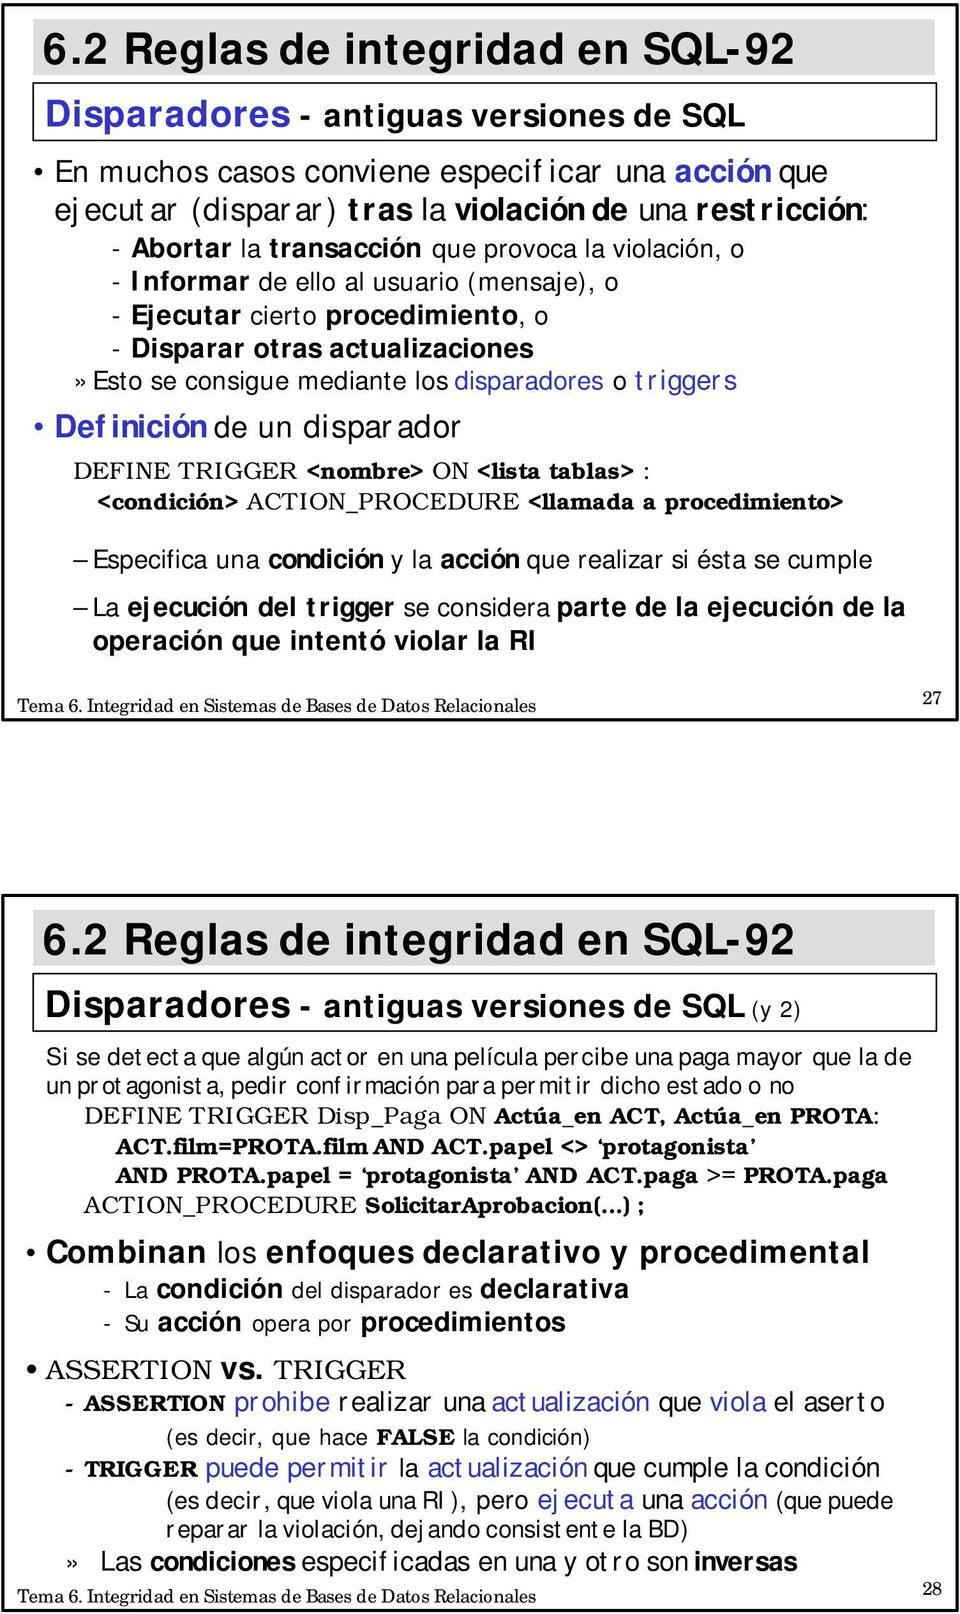 disparador DEFINE TRIGGER <nombre> ON <lista tablas> : <condición> ACTION_PROCEDURE <llamada a procedimiento> Especifica una condición y la acción que realizar si ésta se cumple La ejecución del